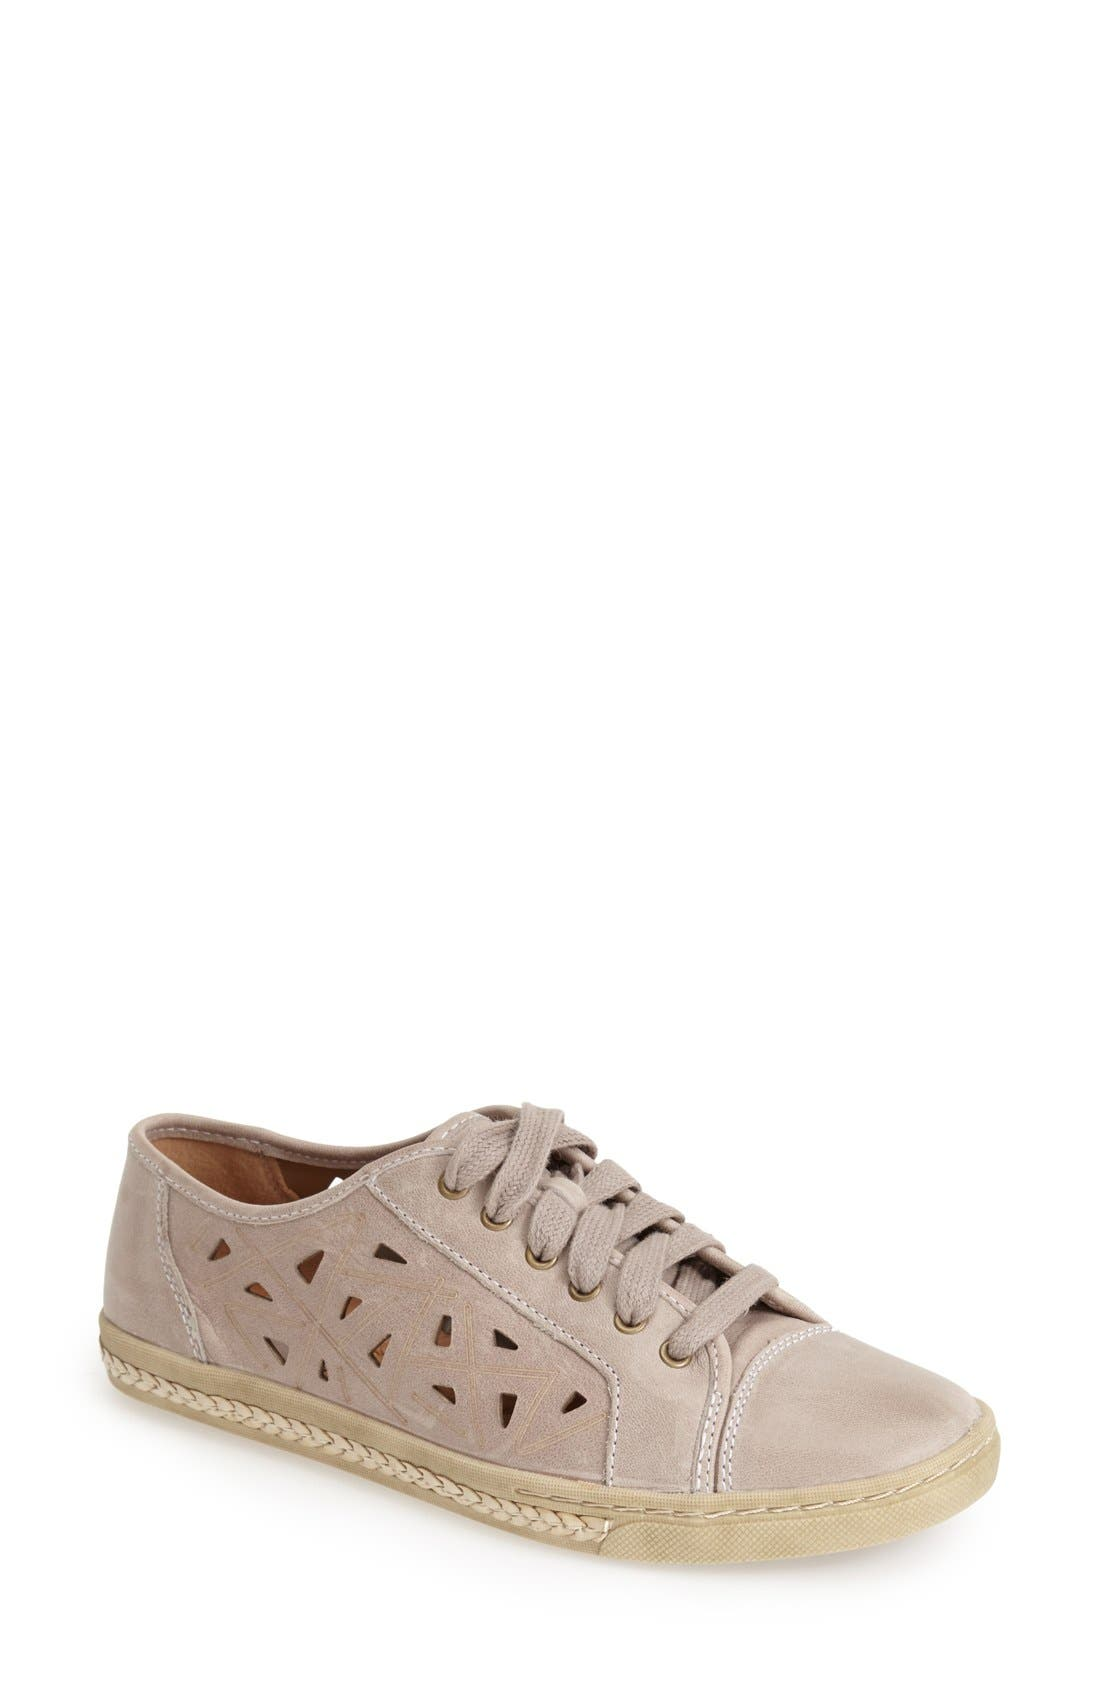 Main Image - Earth 'Pomelo' Perforated Leather Sneaker (Women)